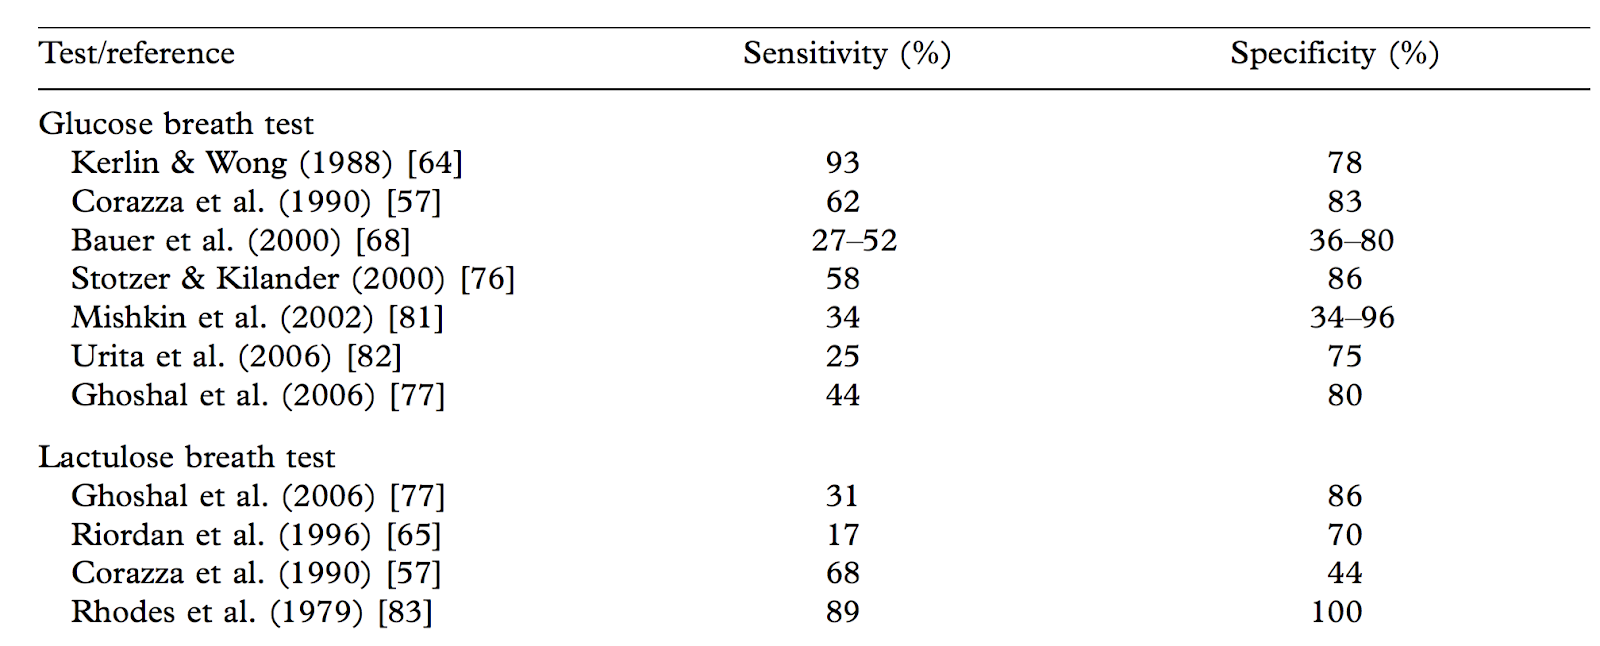 Image taken from: Small intestinal bacterial overgrowth showing differing results for sensitivity and specificity of both the glucose SIBO breath test and the lactulose SIBO breath test.